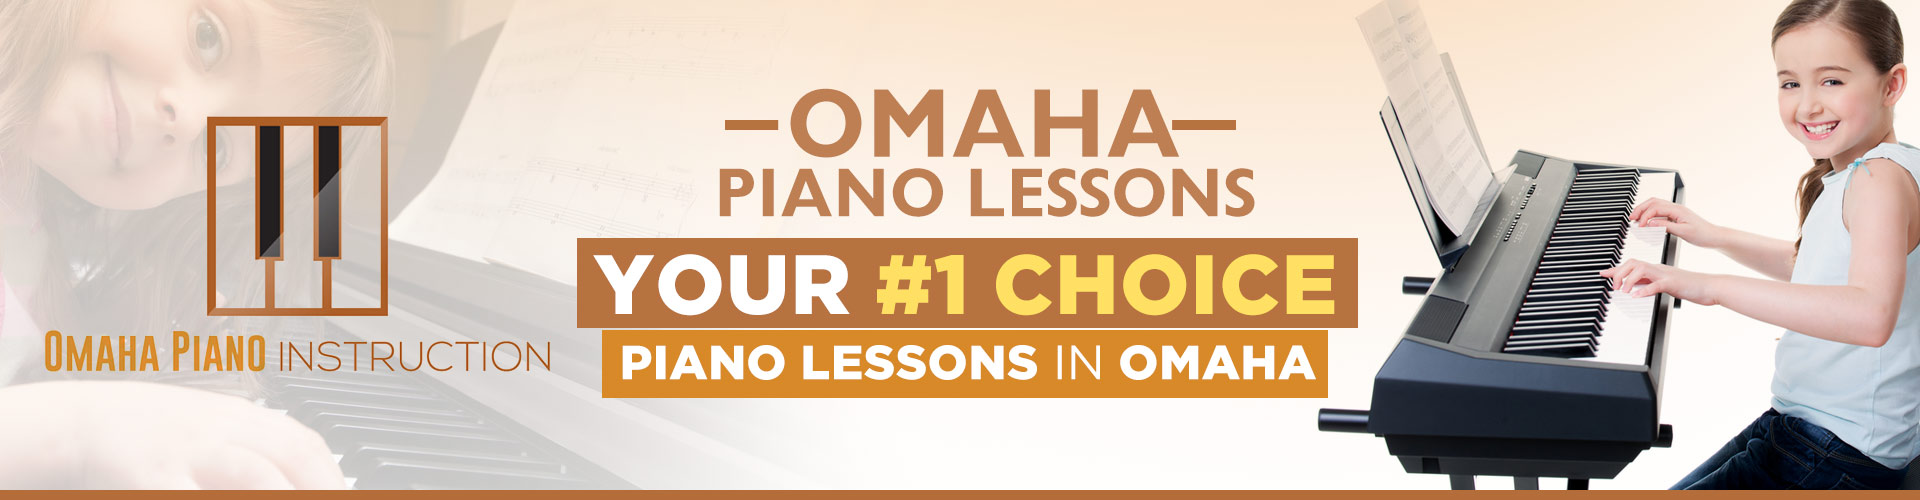 Omaha Piano Lessons